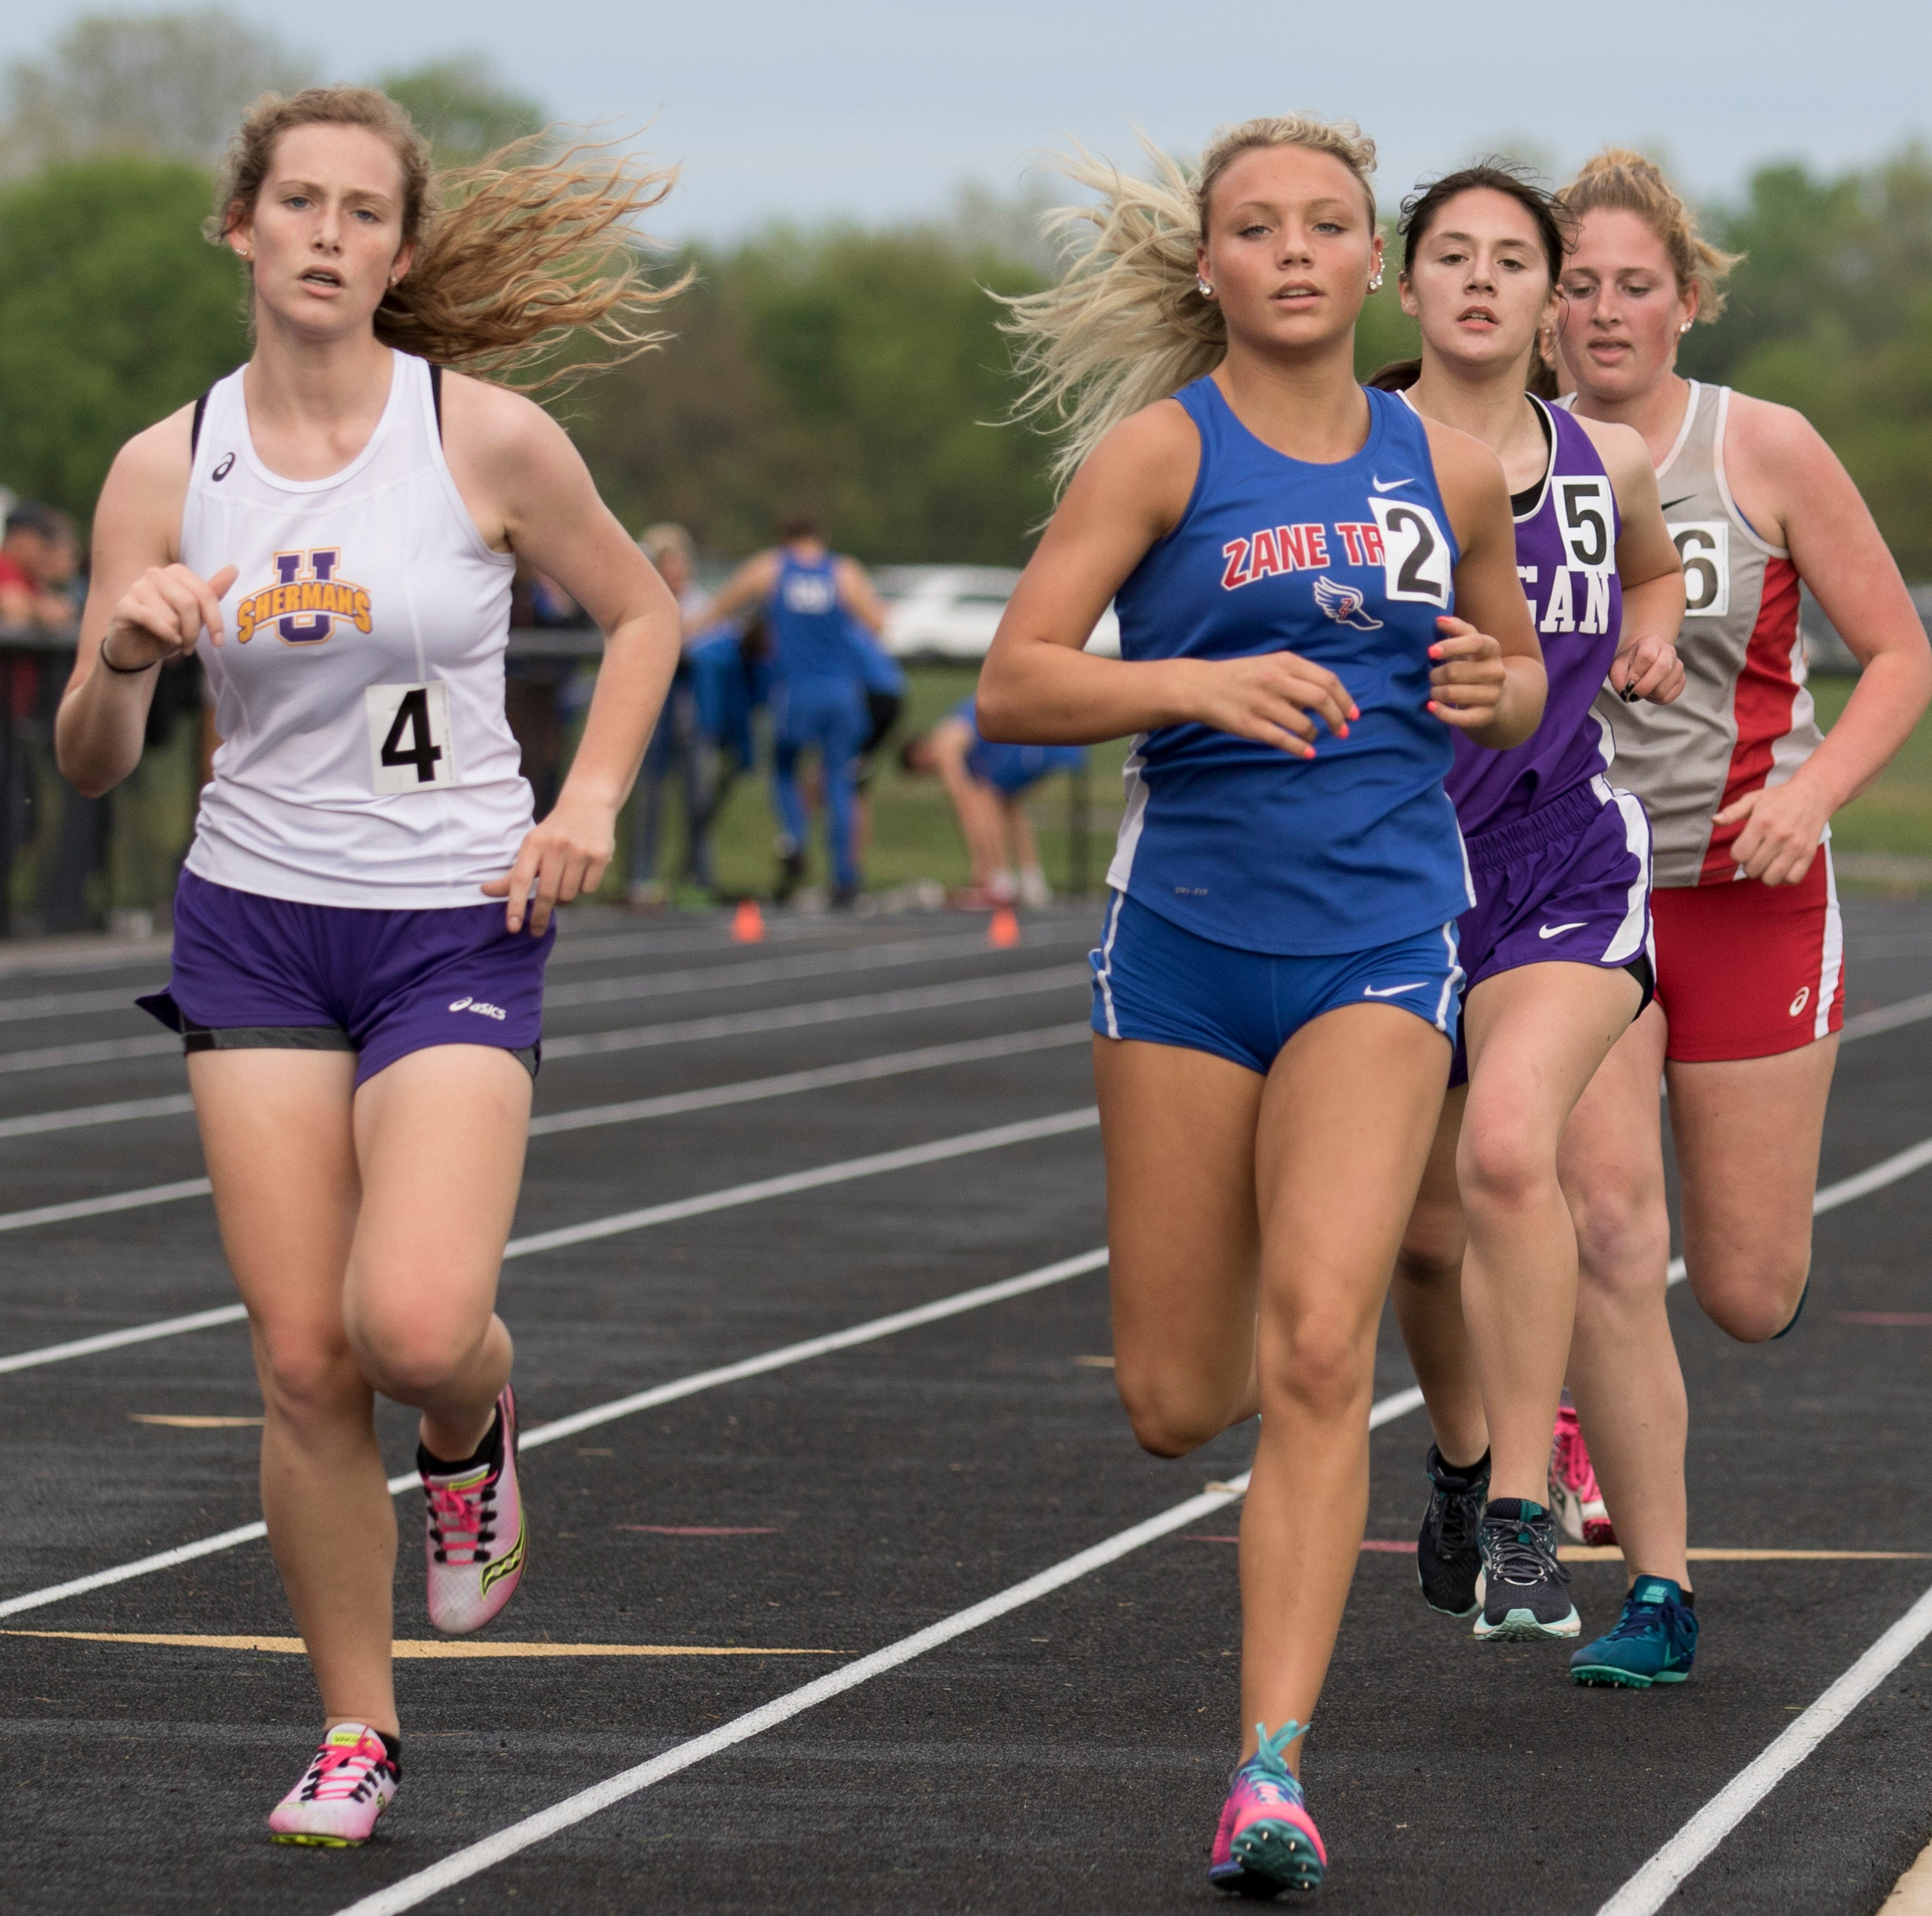 Friday sports scores: Unioto, Zane Trace track and field compete at Circleville